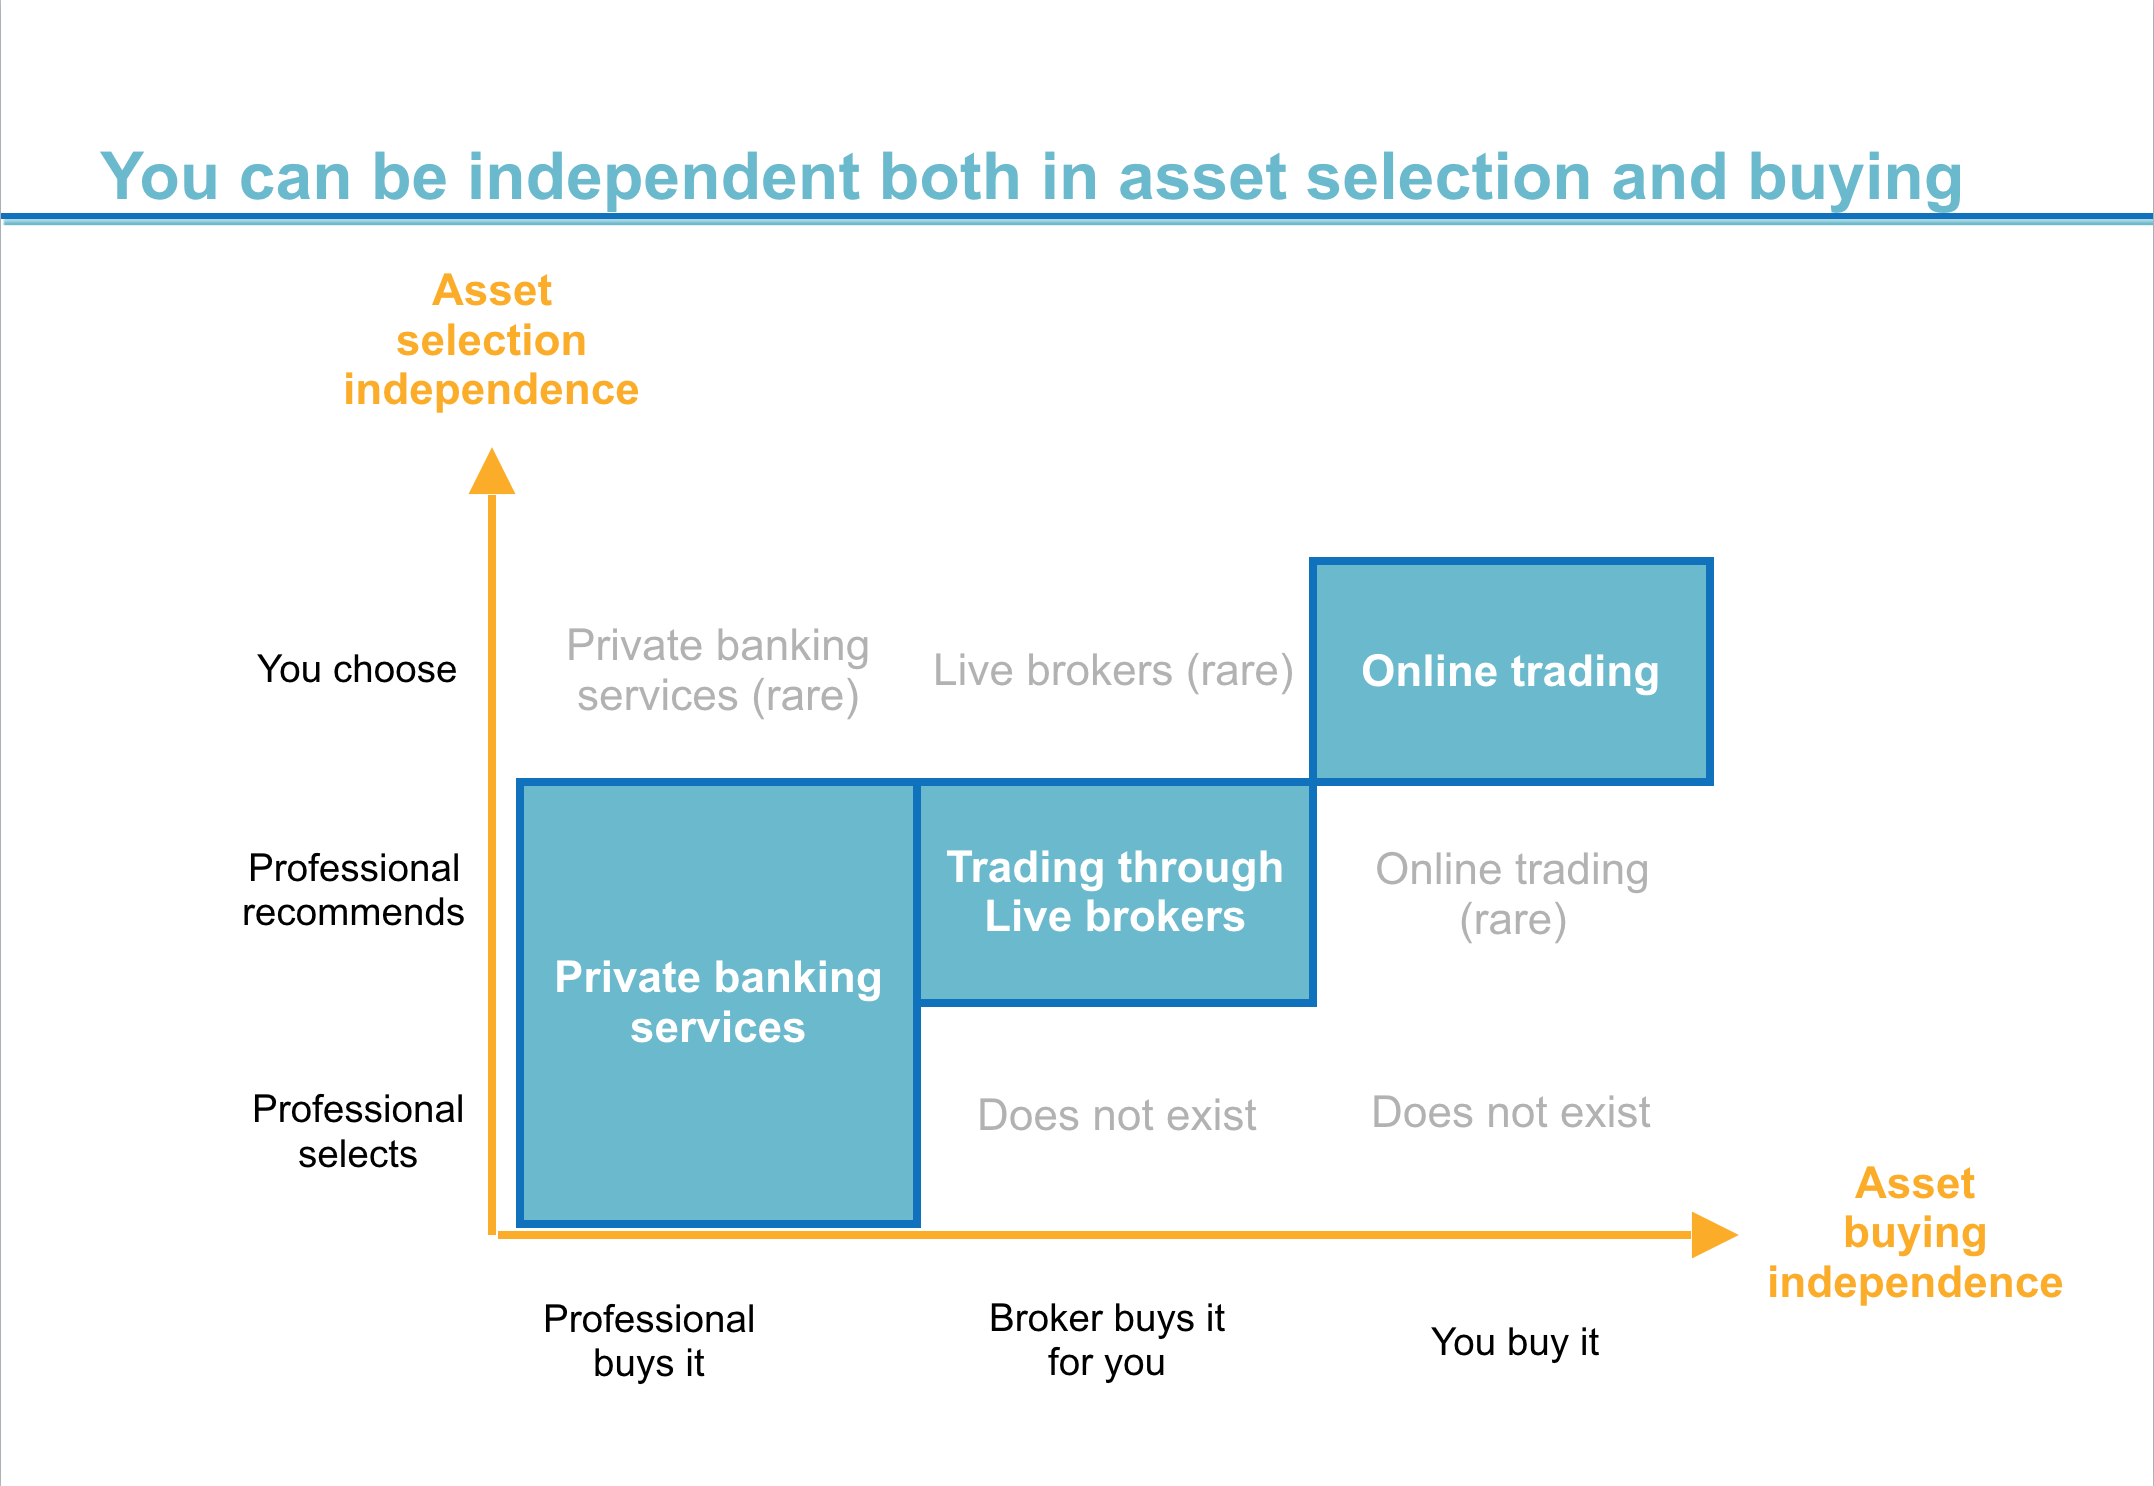 Investing Your Money: Explainer Image on Asset Selection and Asset Buying